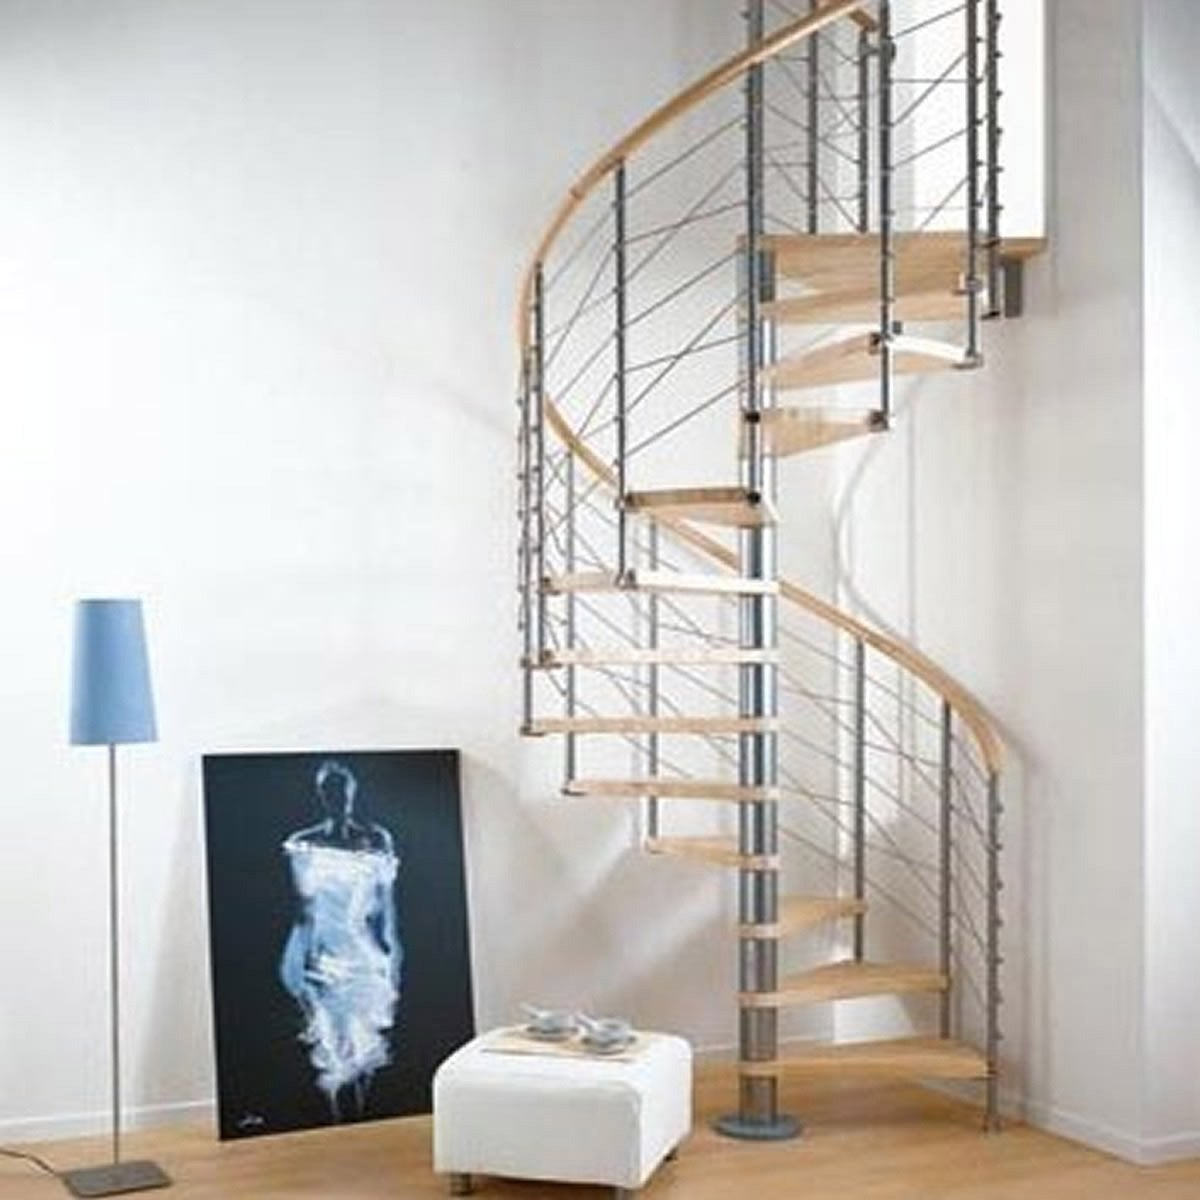 Escalier colima on rond ring structure m tal marche bois - Cancelletti per scale a chiocciola ...